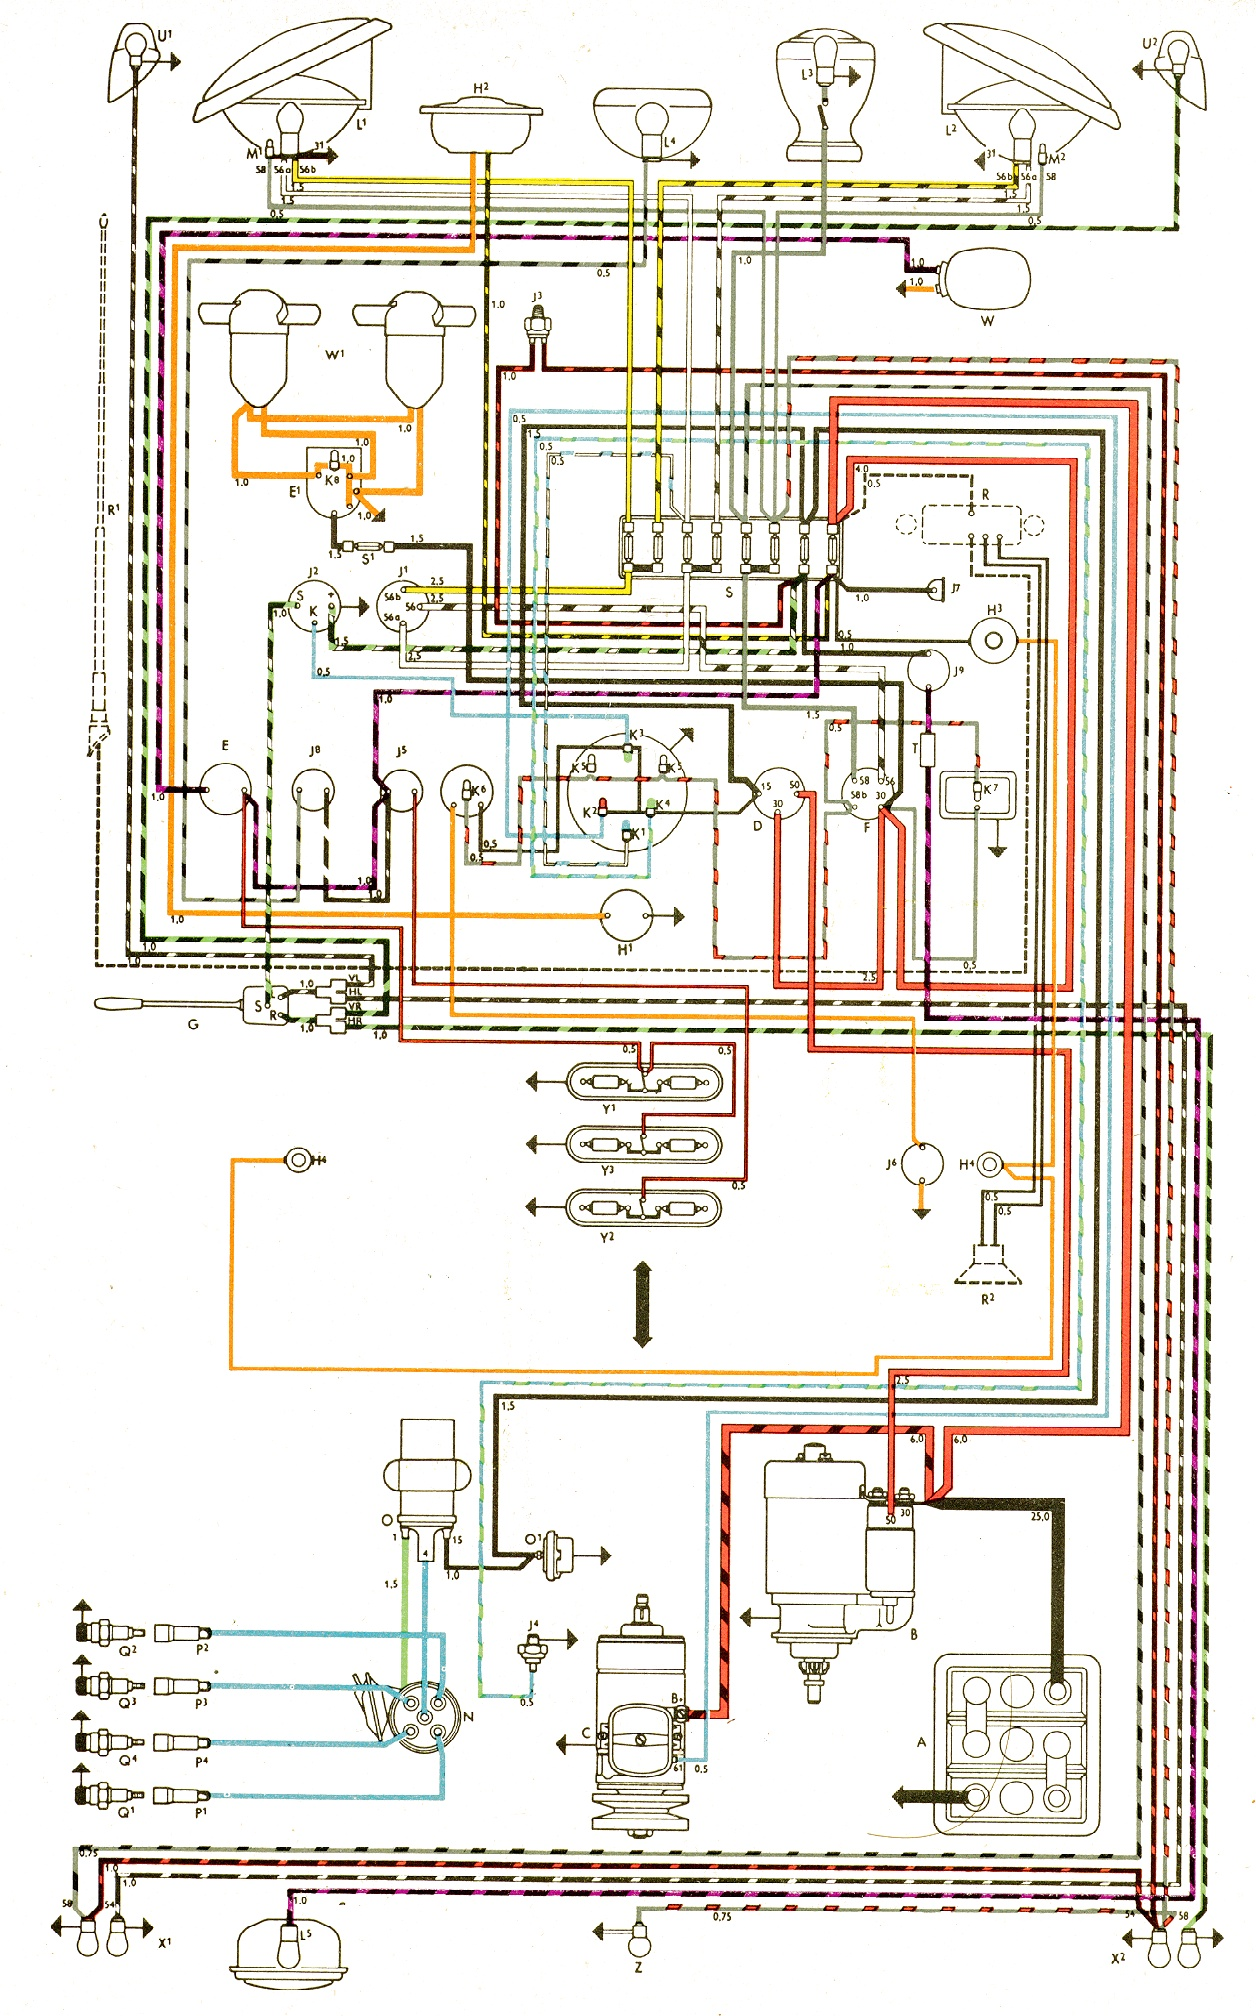 bus 62 vintagebus com vw bus (and other) wiring diagrams vw engine wiring diagram at gsmx.co